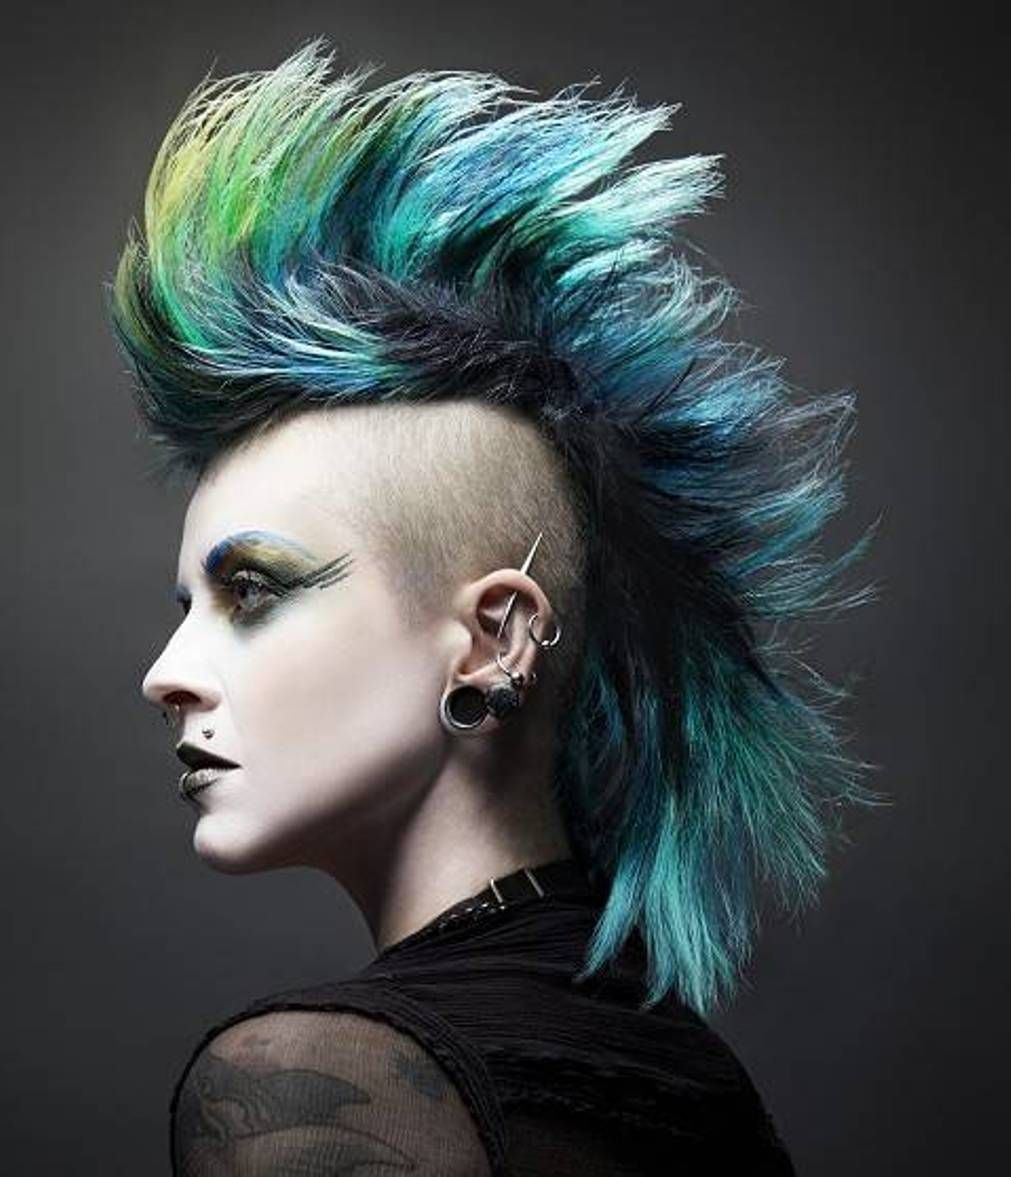 the new punk mens hairstyles still retain the rebellious look, but